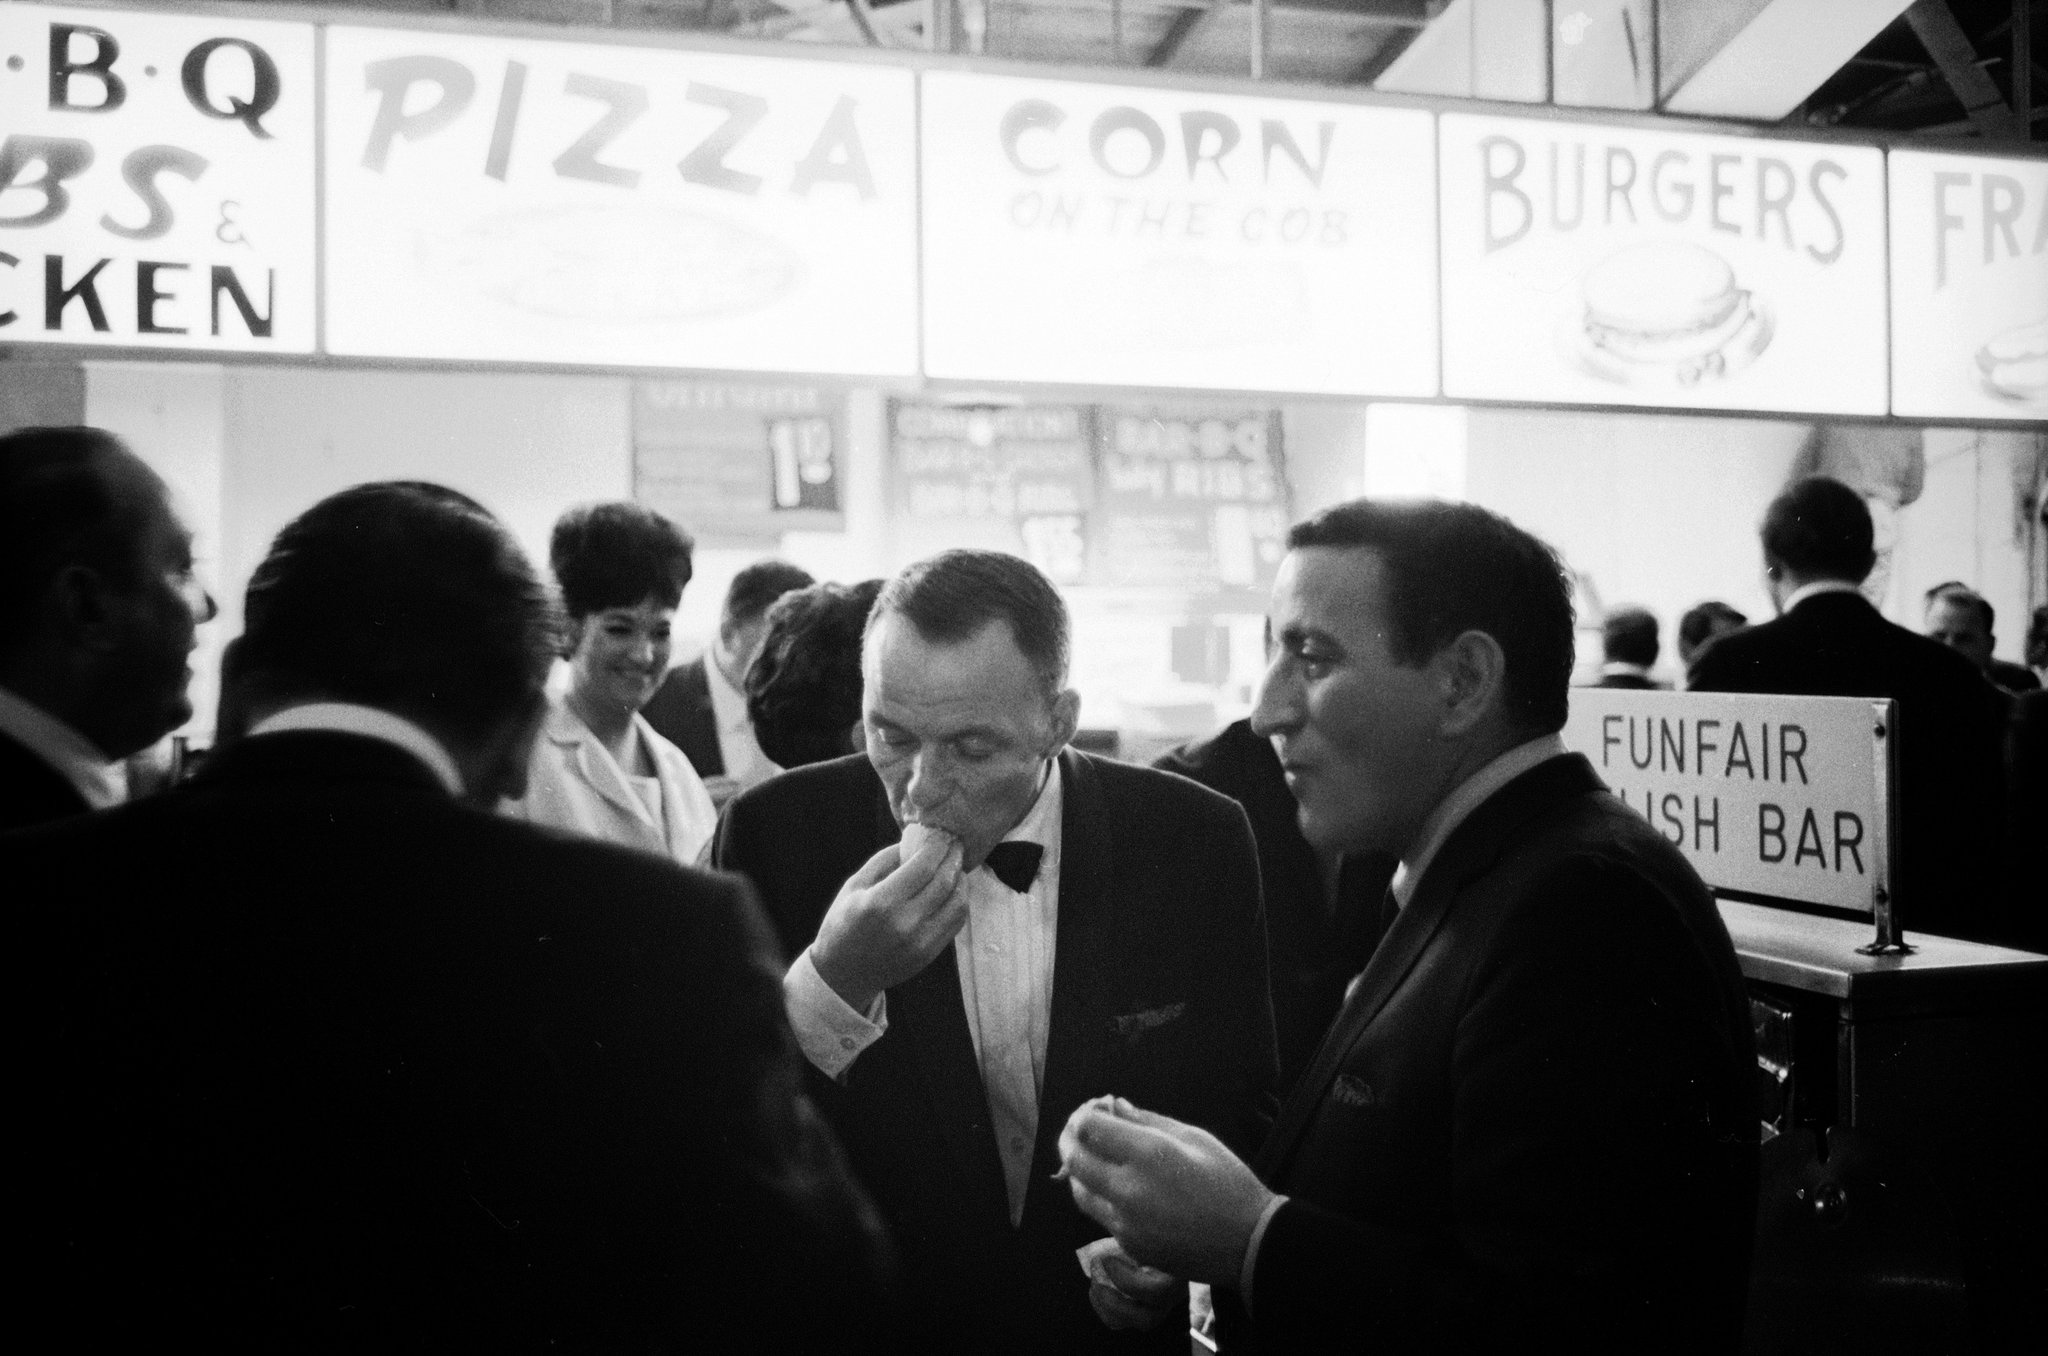 Old Hollywood On Twitter Frank Sinatra And Tony Bennett Eating Hot Dogs At An Outdoor Stand In Miami 1965 Photo By John Dominis For Life Magazine Https T Co N5rwwansyk